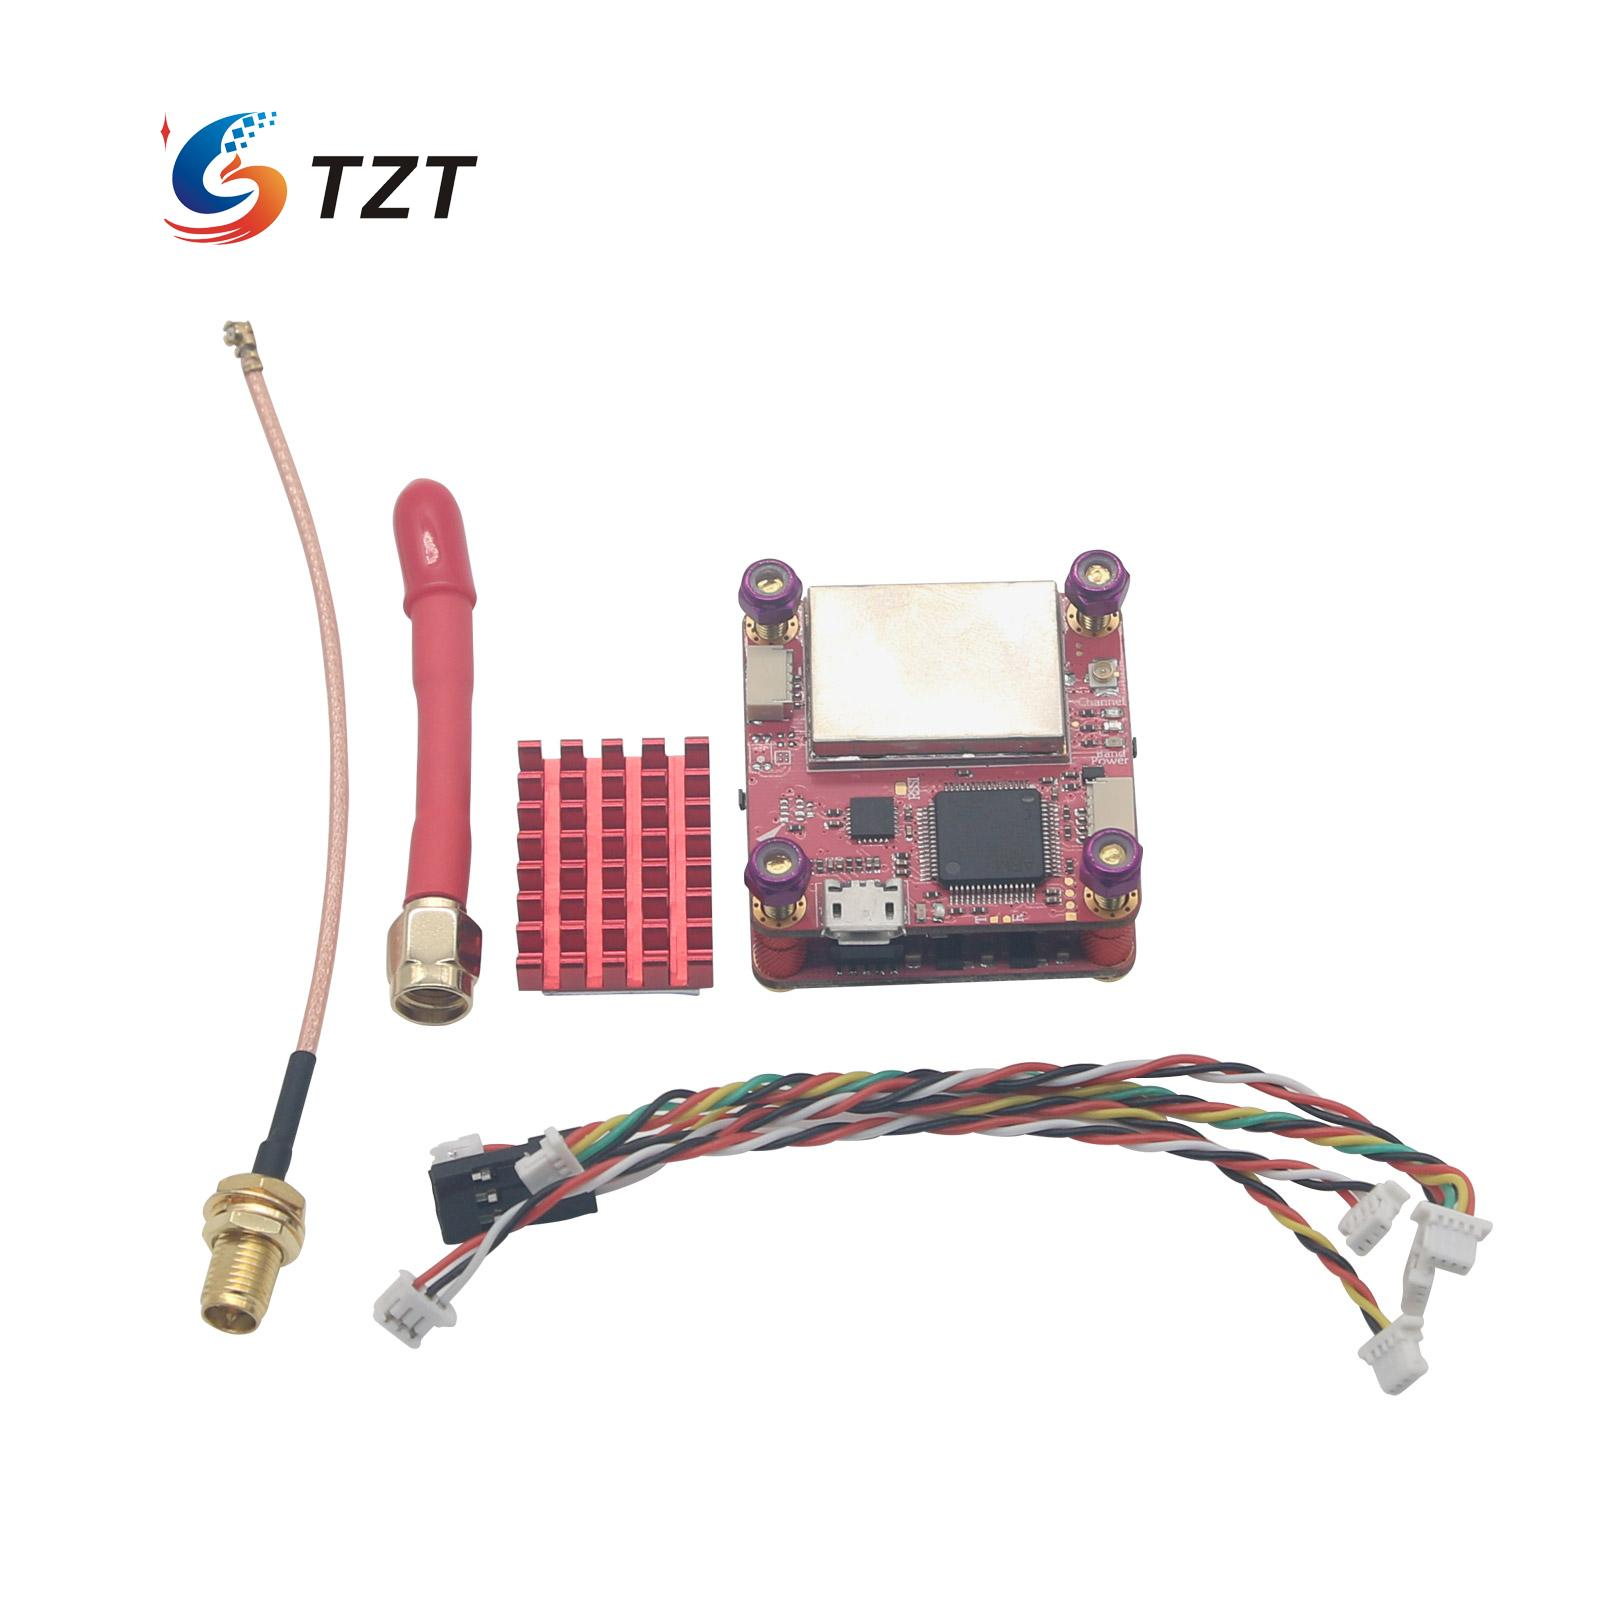 Flytower Flytower F3 Pro/F4 Pro Flight Controller Board OSD BEC 4 in 1 BLHeli_S Dshot 600 ESC VTX with Audio high quality flytower f3 flight controller 25 200 400mw switchable fpv transmitter osd dshot 30a 4 in 1 esc pdb